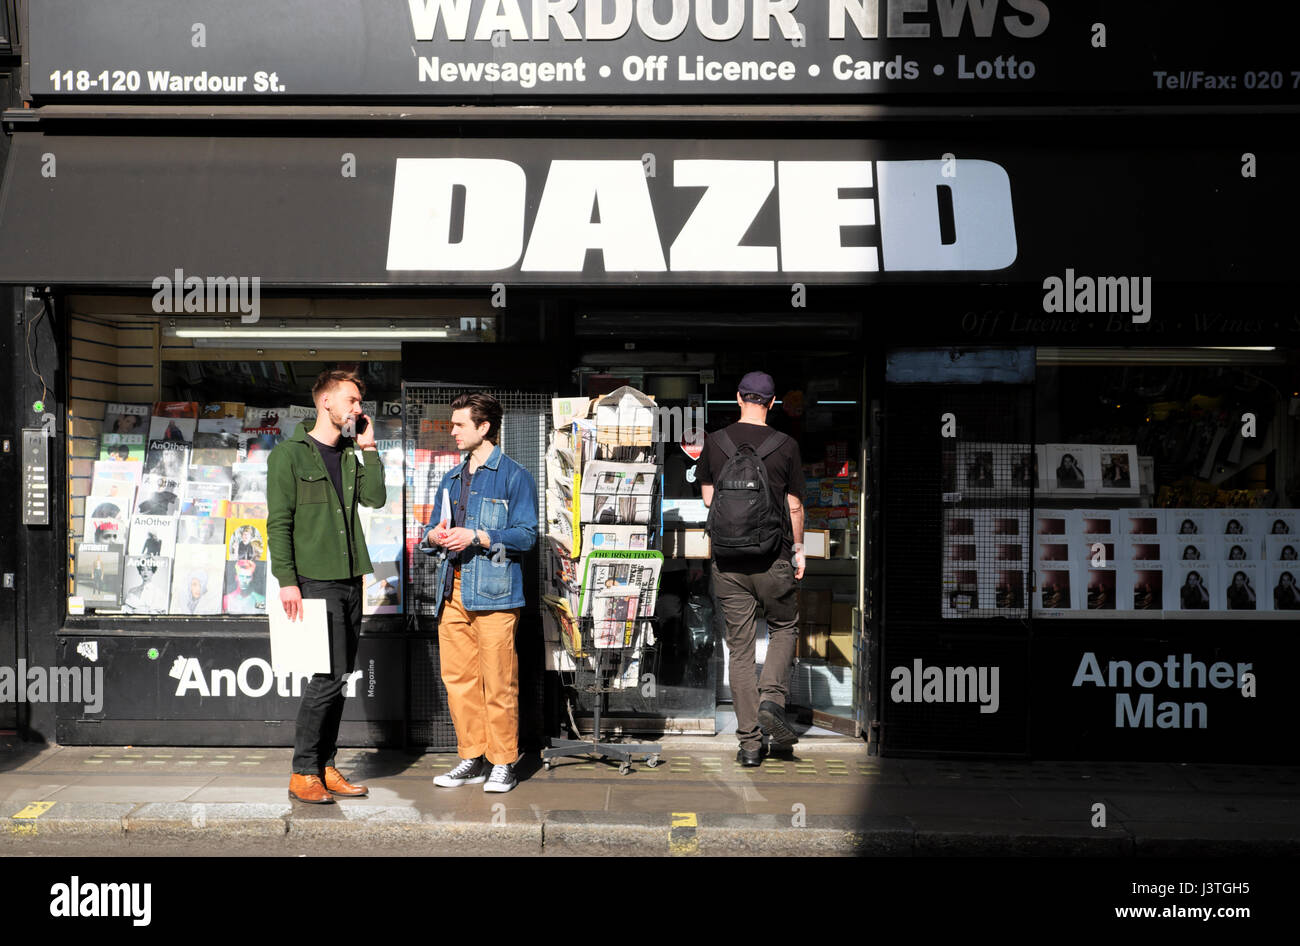 Man and friend talking on mobile phone outside Wardour News newsagent shop with DAZED magazine sign in Wardour Street - Stock Image